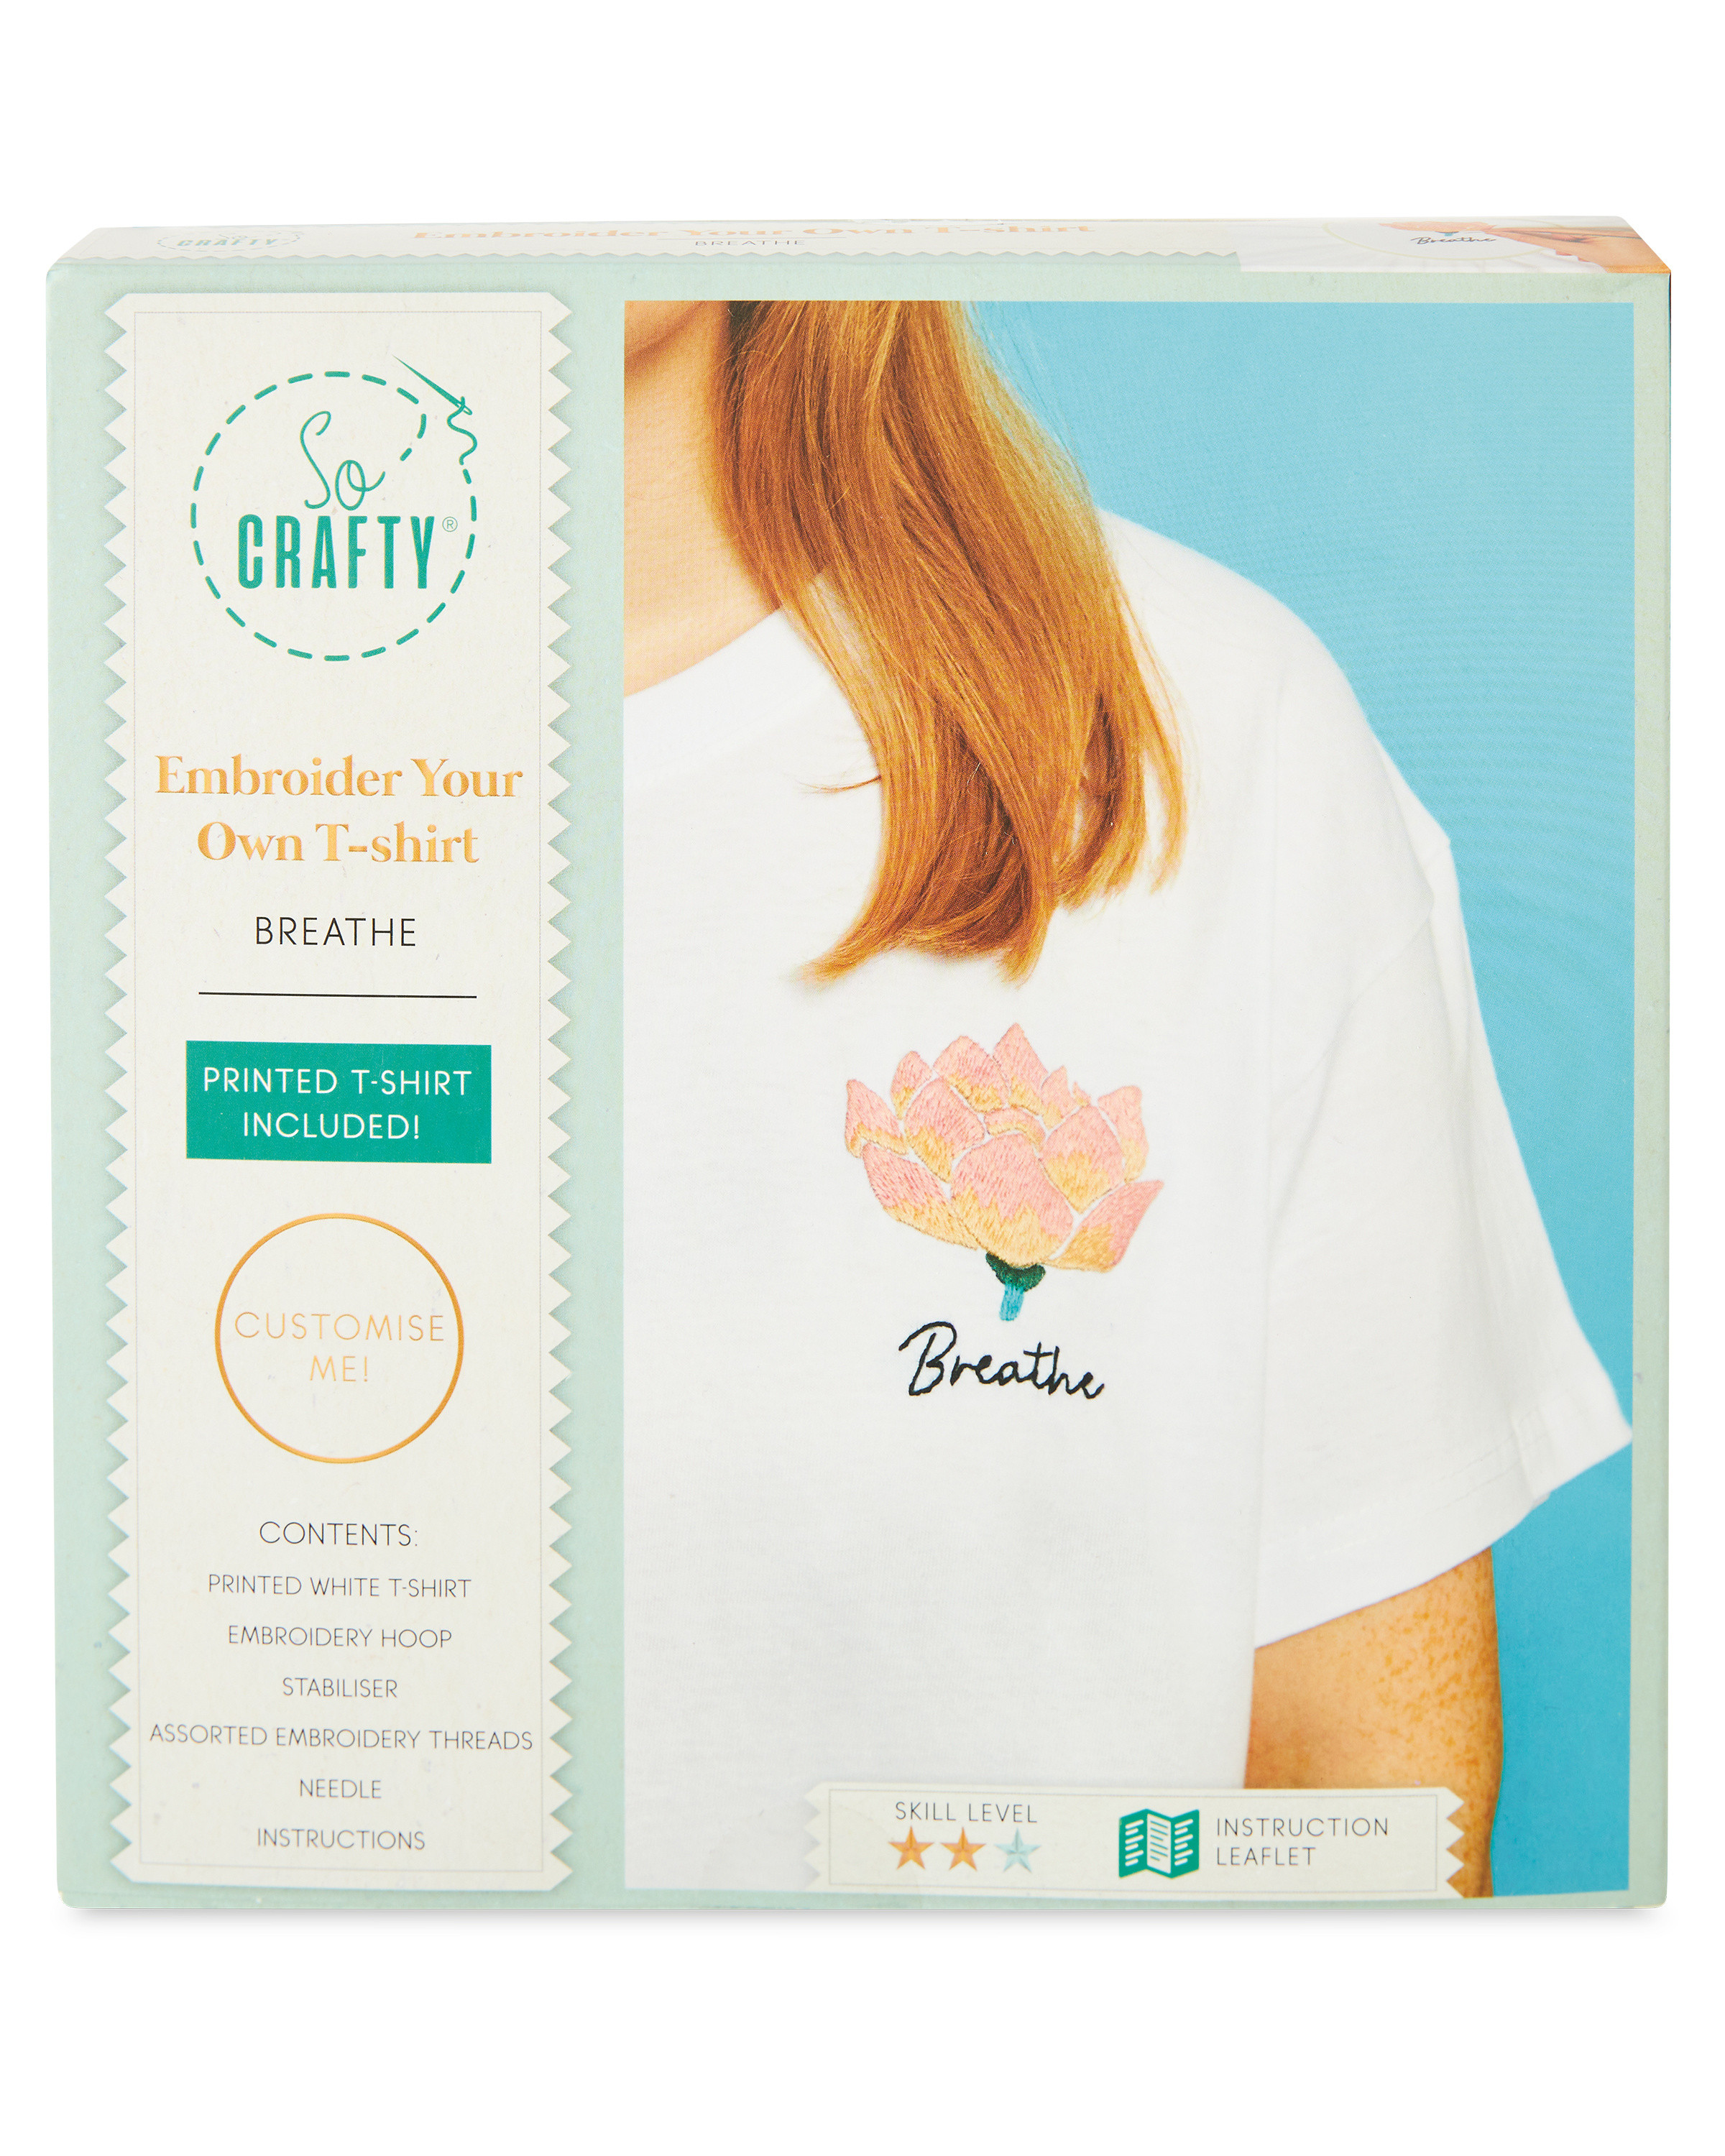 Embroider Your Own T-shirt Breathe